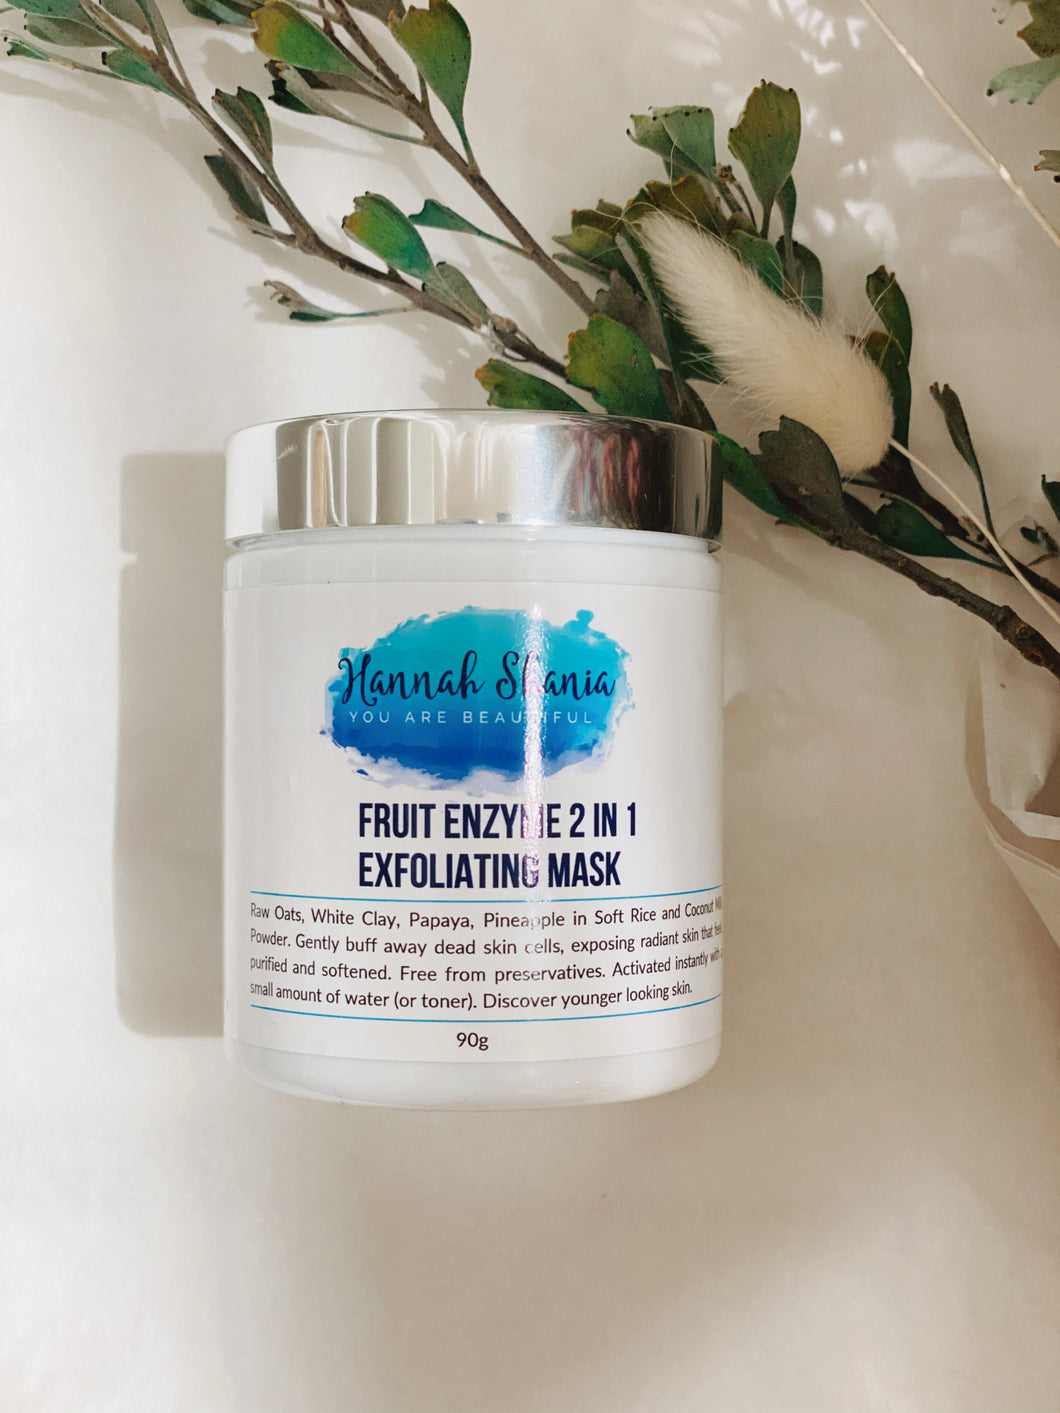 HANNAH SHANIA - FRUIT ENZYME 2 IN 1 EXFOLIATING MASK 70g